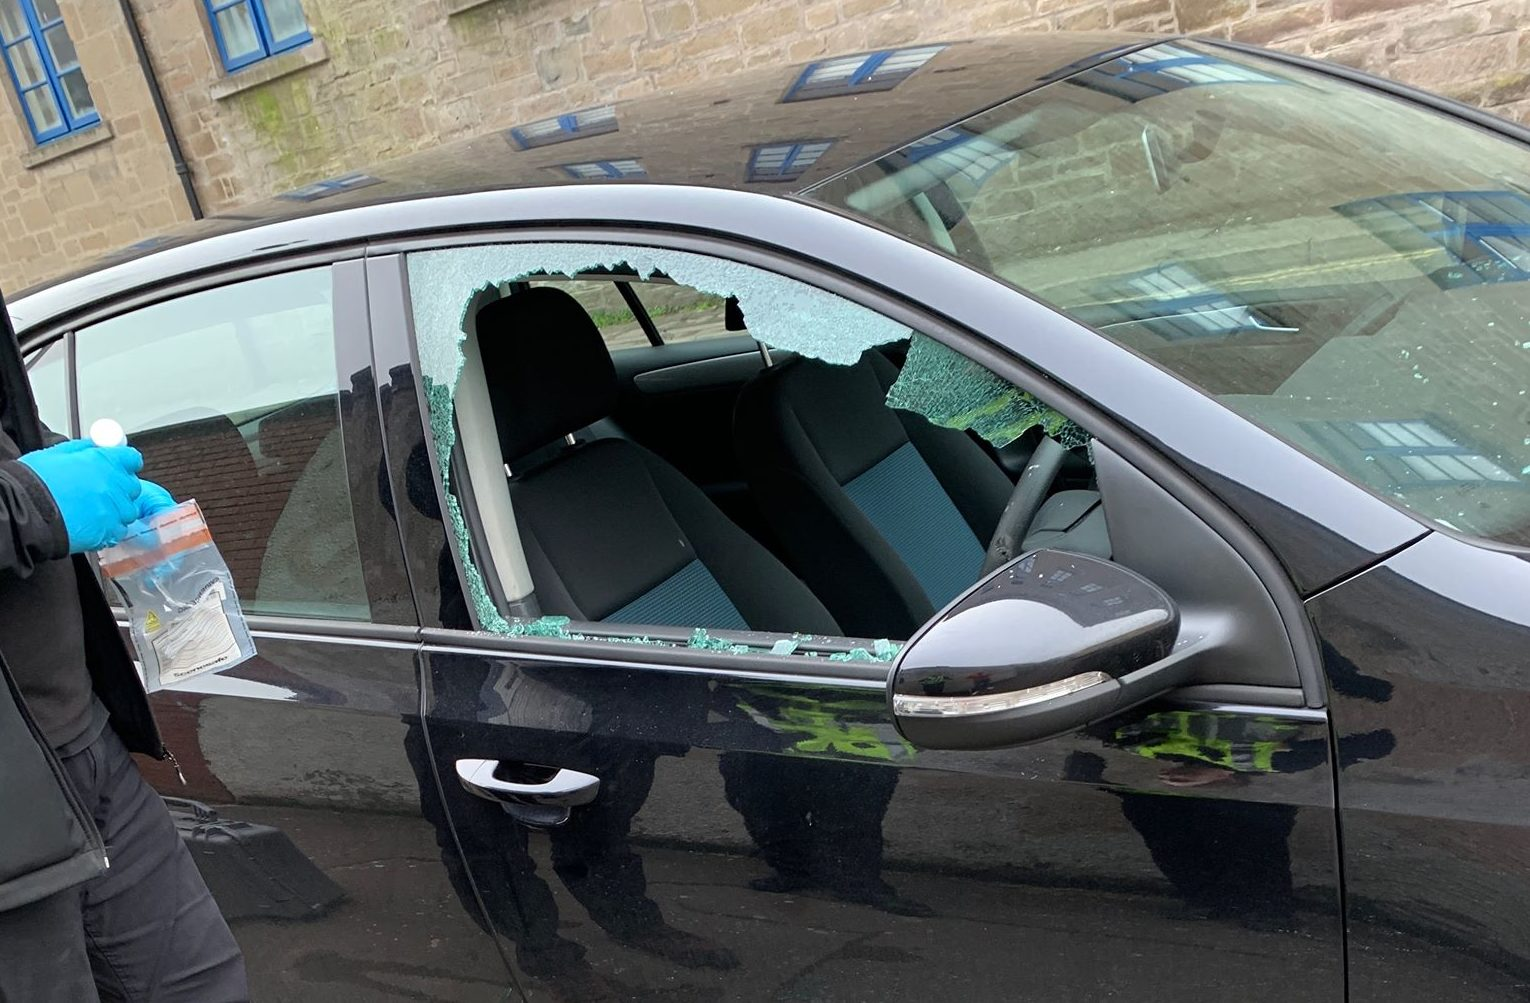 The Volkswagen Golf was broken into on Brown Street on Sunday afternoon